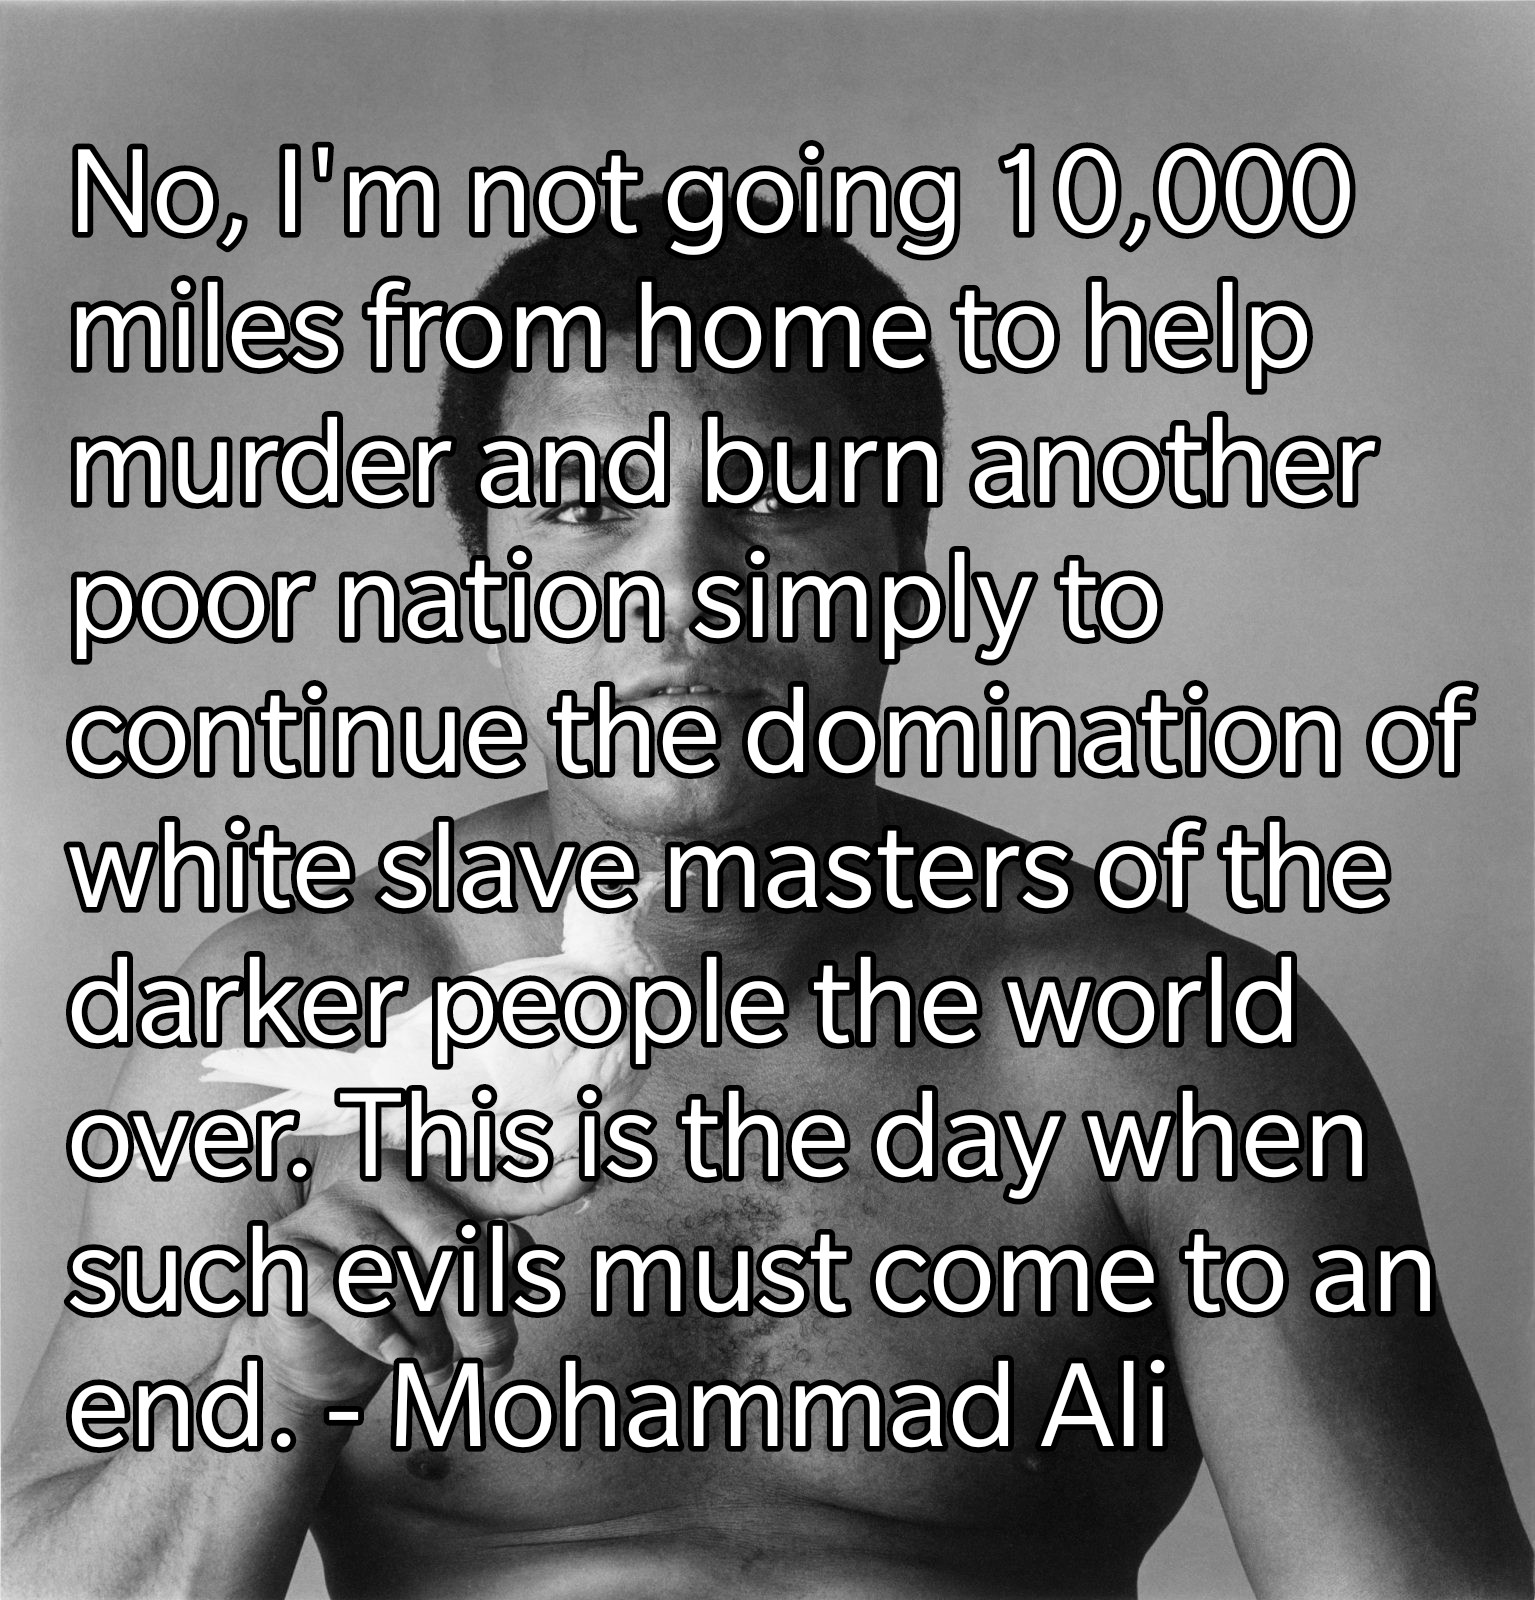 No, I'm not going 10,000 miles from home to help murder and burn another poor nation simply to continue the domination of white slave masters of the darker people the world over. This is the day when such evils must come to an end. – Mohammad Ali [1600 x 1535]